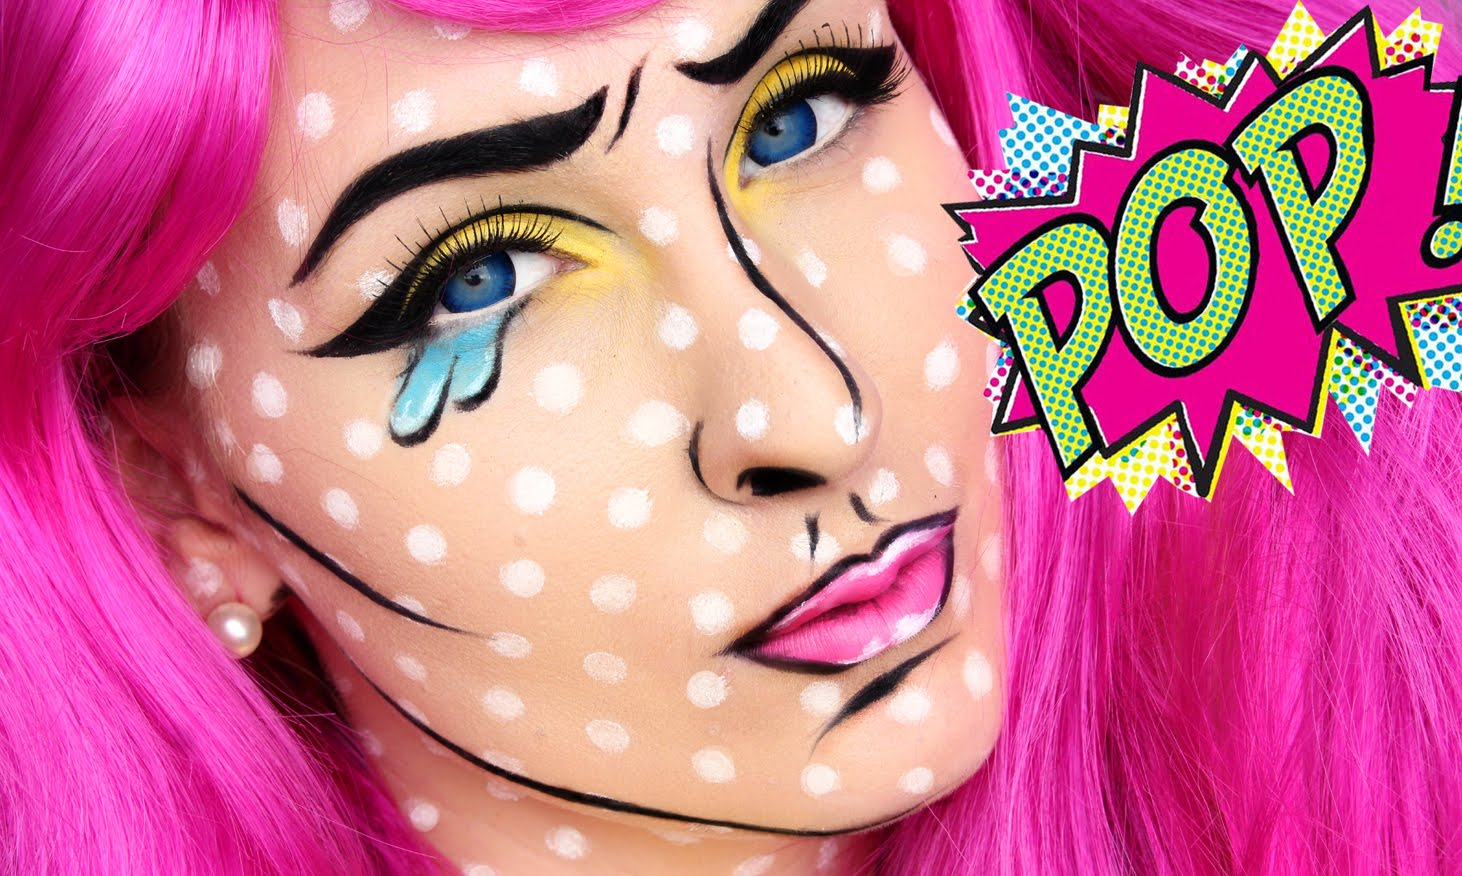 Pop Art Makeup Is The Rage For Halloween–She Shows You How To Get This Effect!